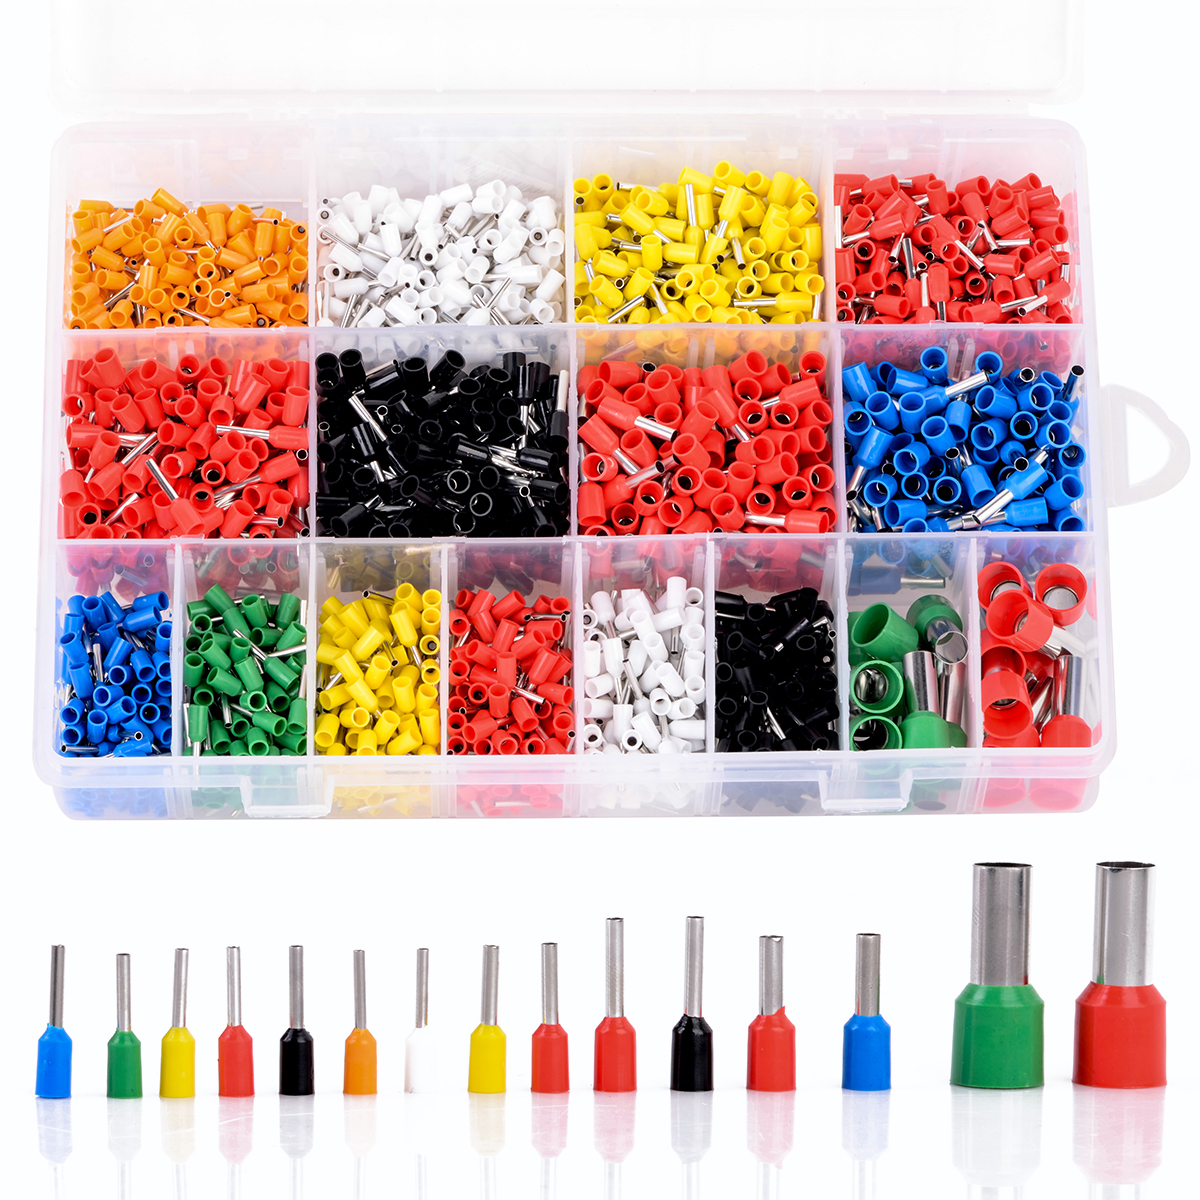 2120pcs Insulated Cord Pin End Terminals Tin-Plated Copper Crimp Connector Ferrules Kit Set For 22-5AWG 800pcs cable bootlace copper ferrules kit set wire electrical crimp connector insulated cord pin end terminal hand repair kit